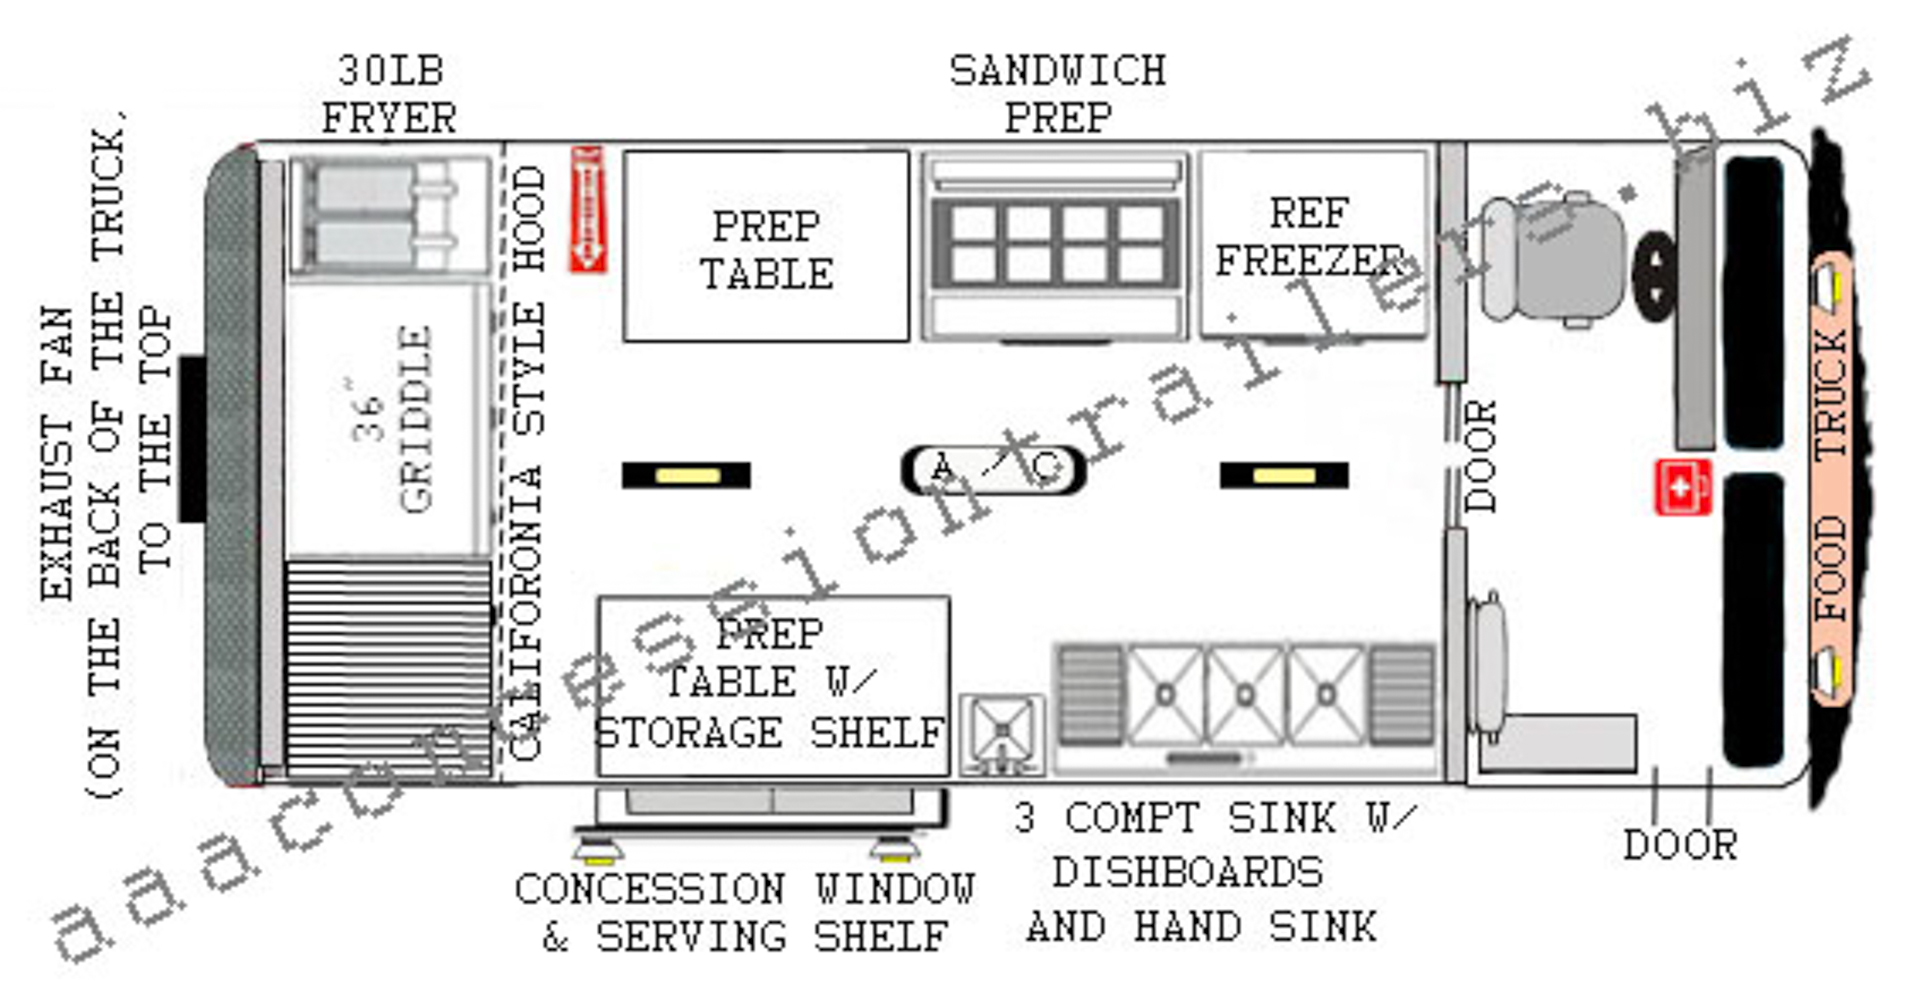 Food trucks business plan